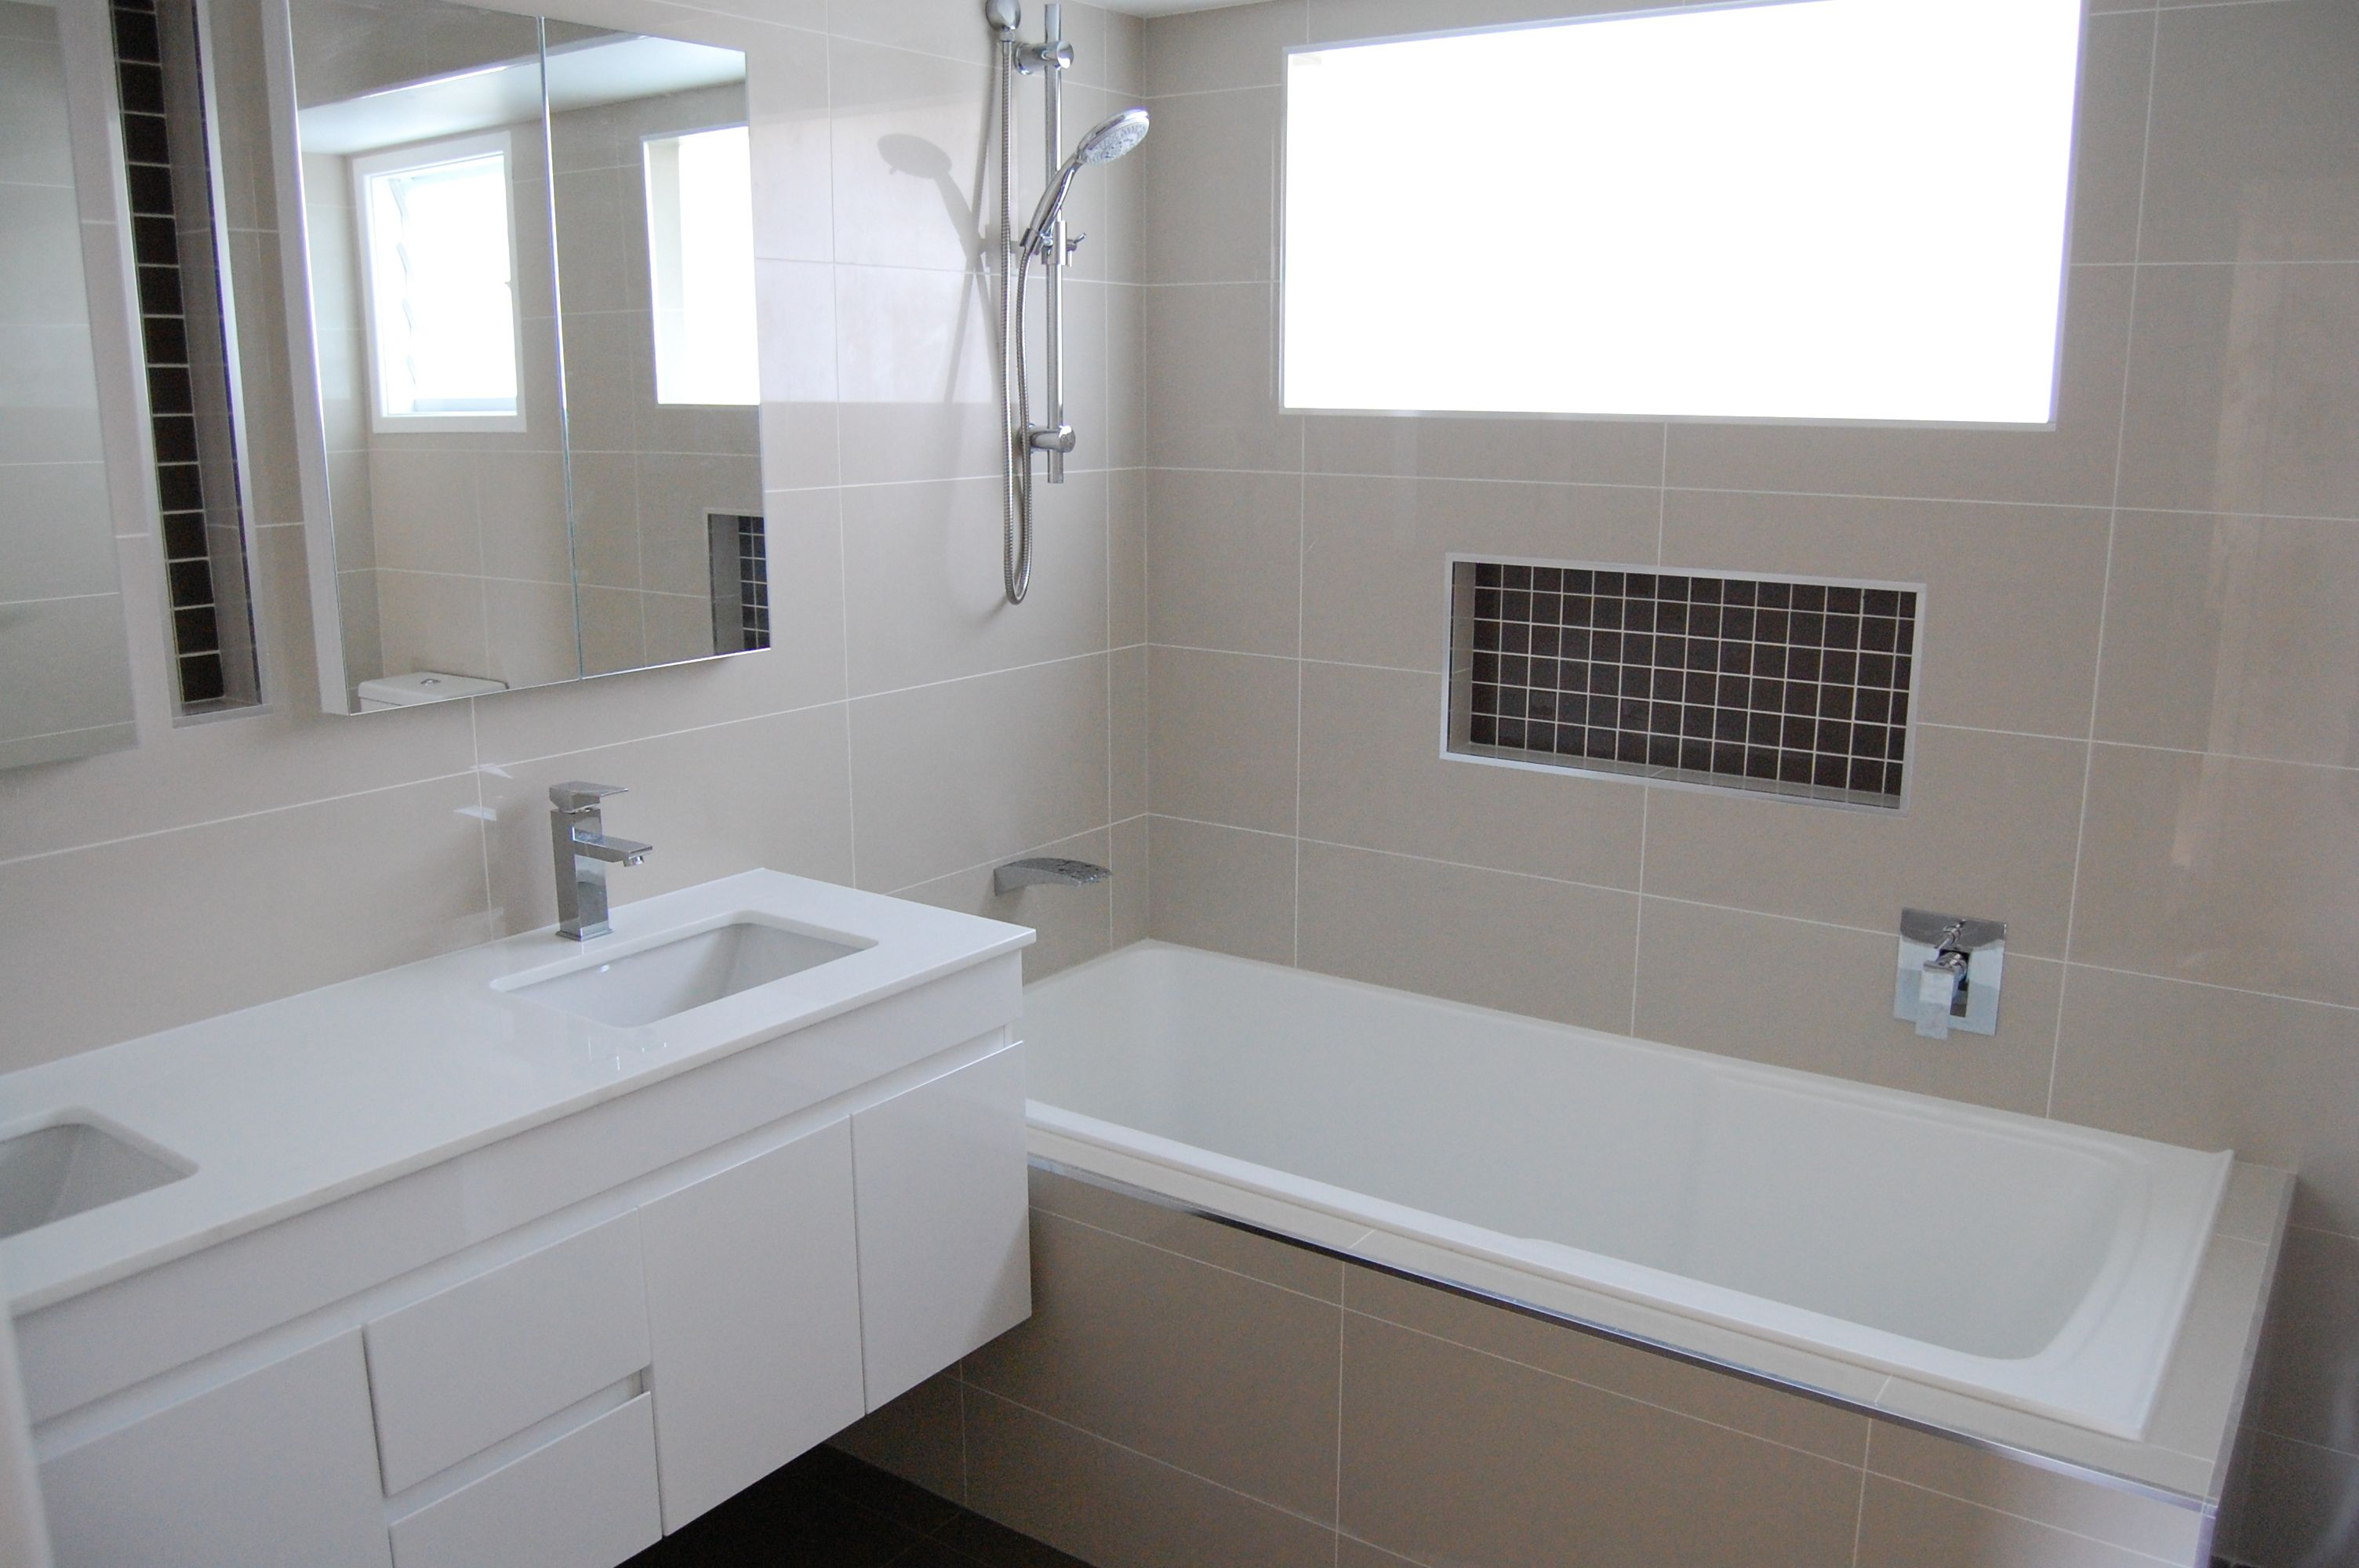 Feature Tiles Bathroom Ideas 3008 X 2000 Disclaimer We do not own any of these pictures graphics